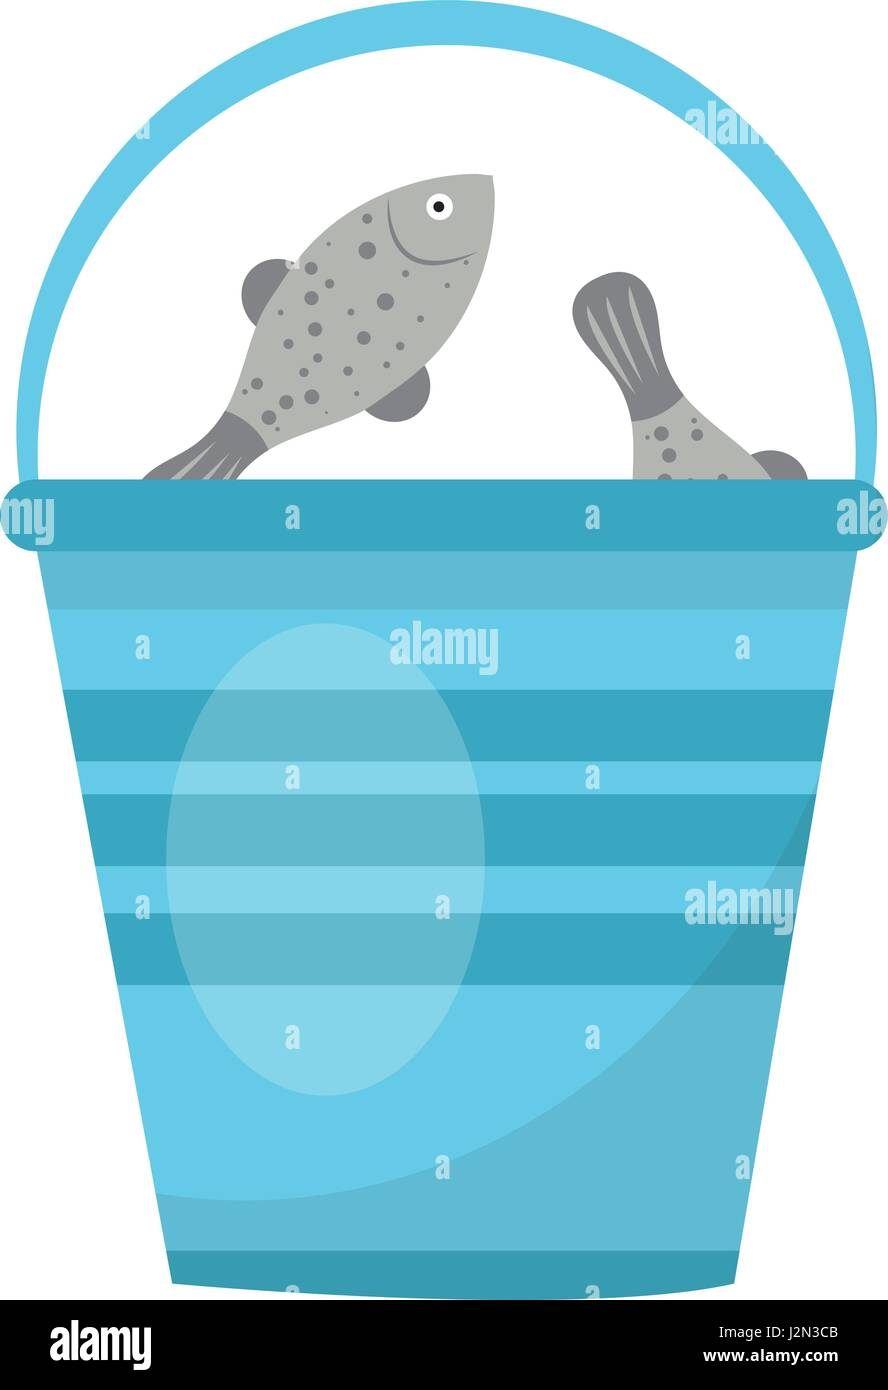 Bucket of fish stock photos bucket of fish stock images for Bucket of fish